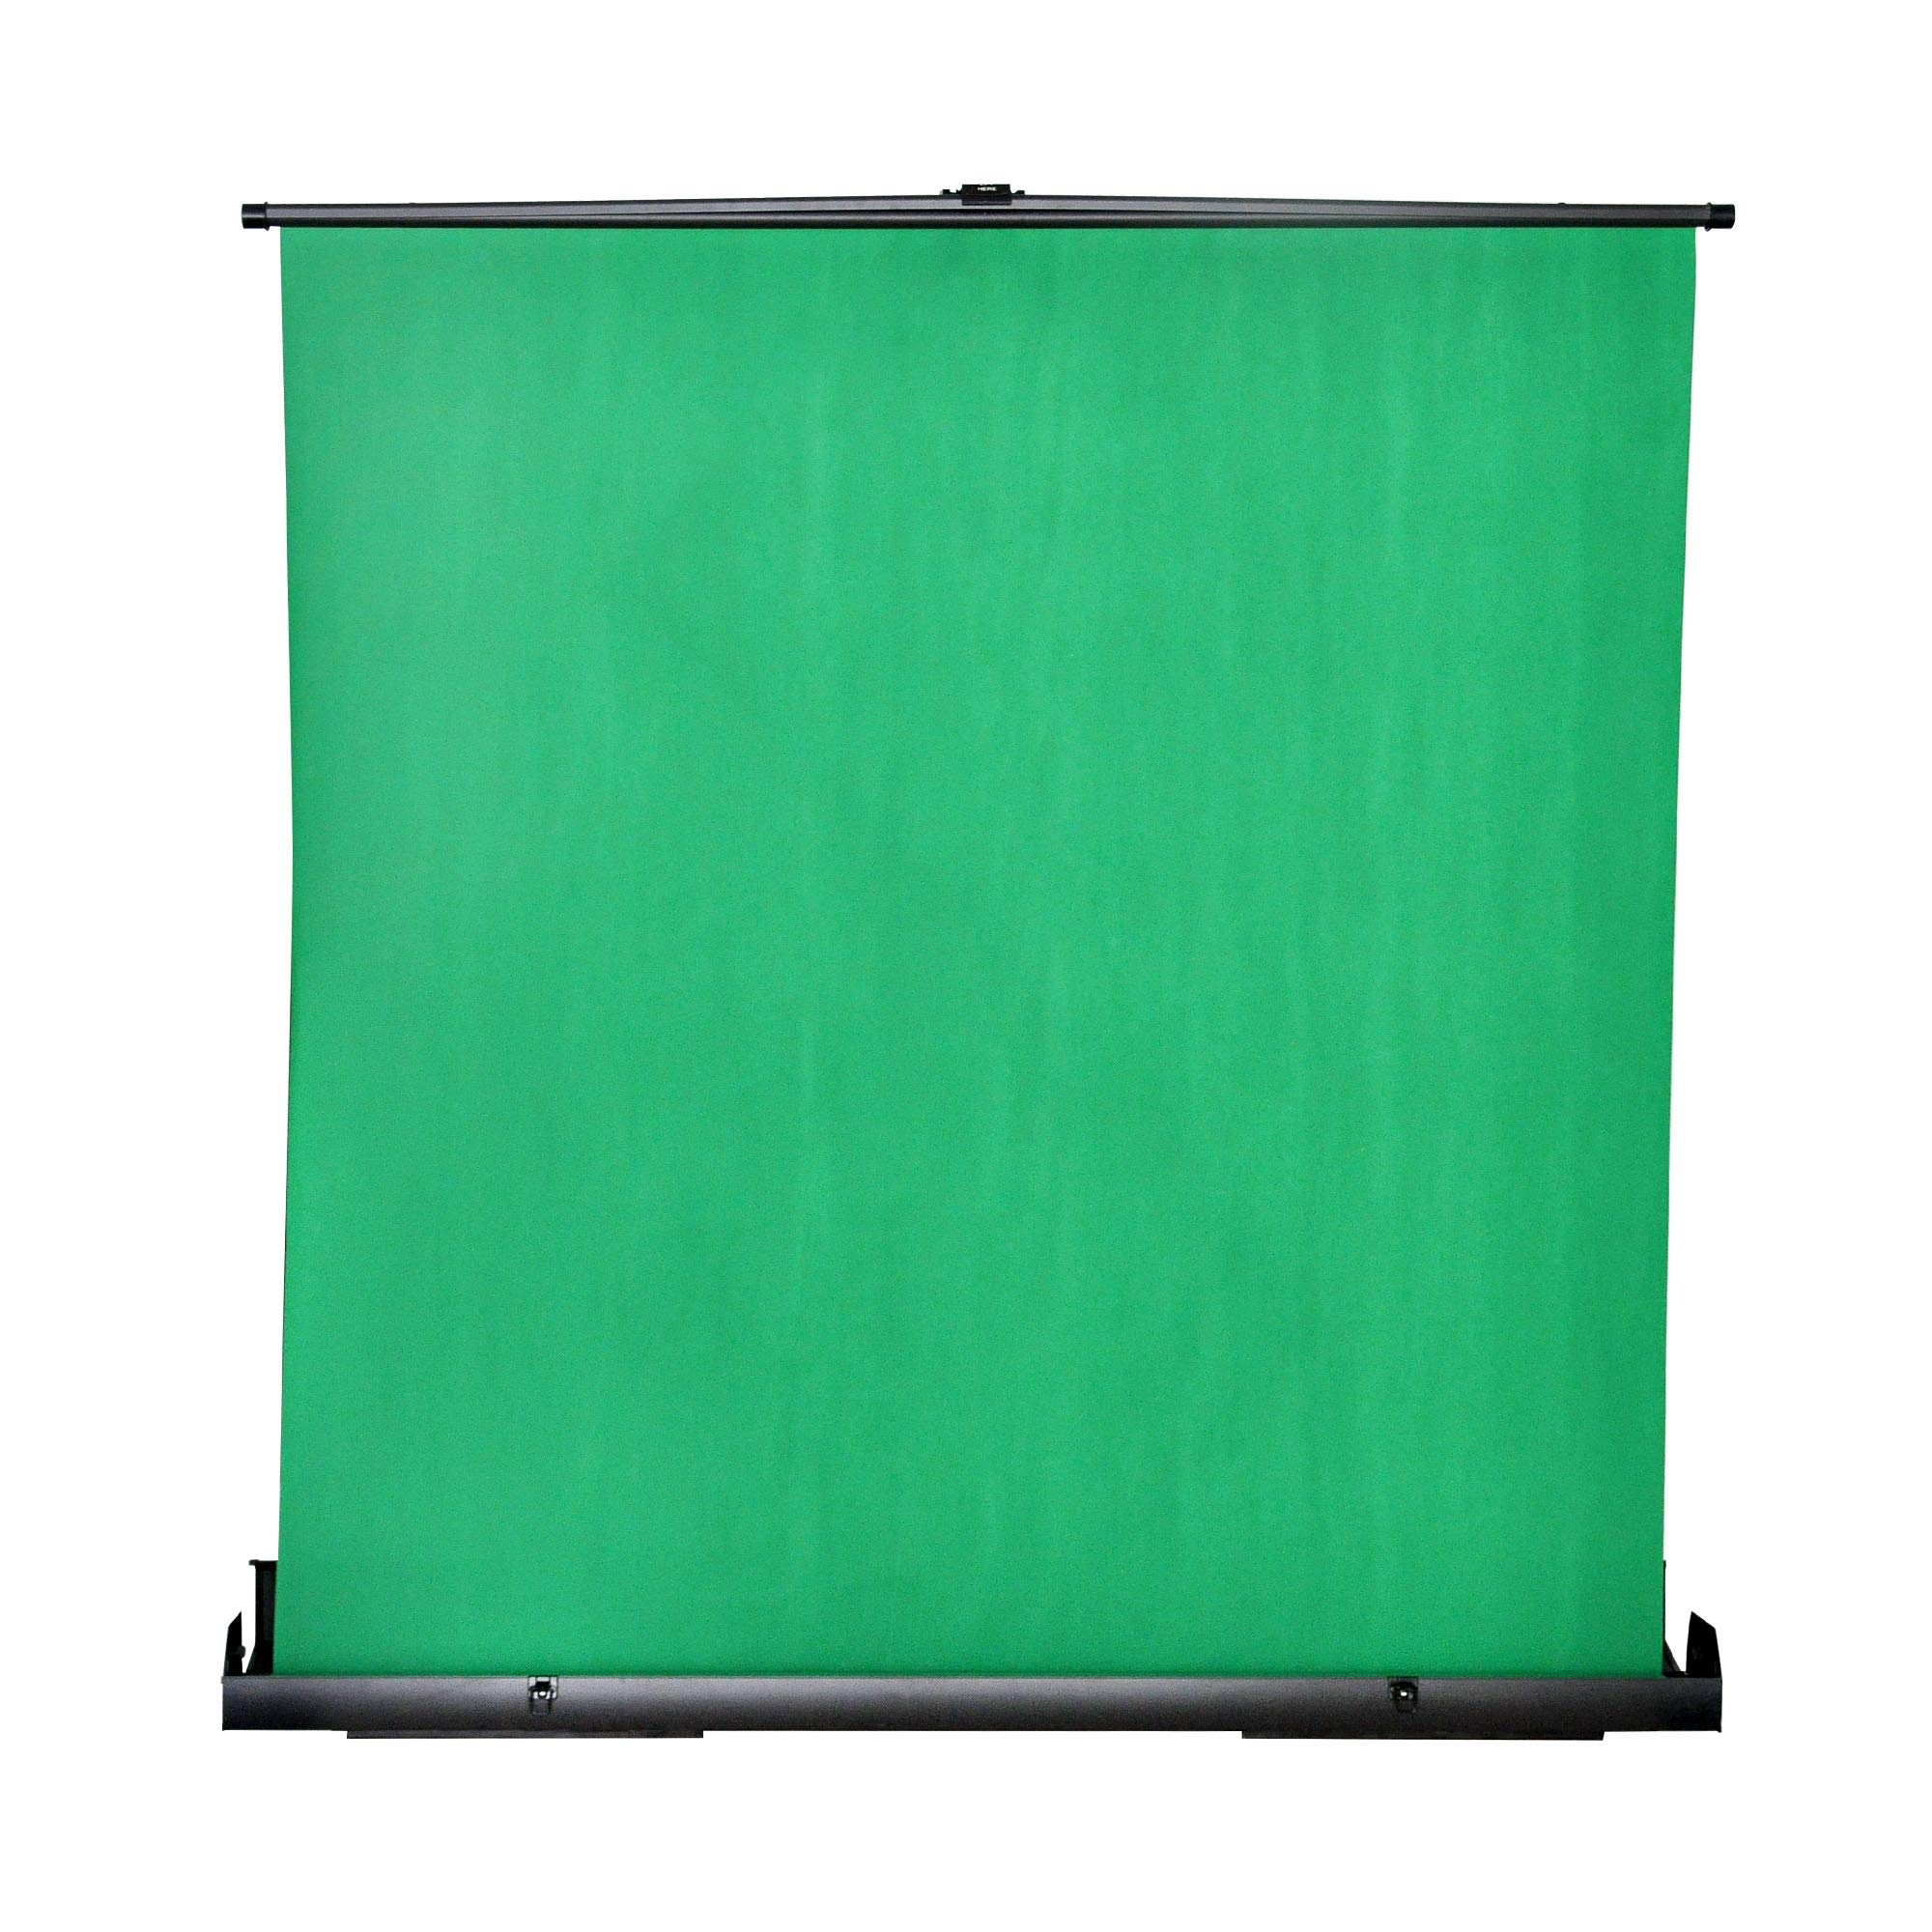 MAXTEX Green Screen, Portable Pull Up Wrinkle-Resistant Greenscreen Background Pull Up Backdrops Green Screen Backdrop Setup Auto-Locking Frame, Solid Safety Aluminium Base by MAXTEX (Image #1)